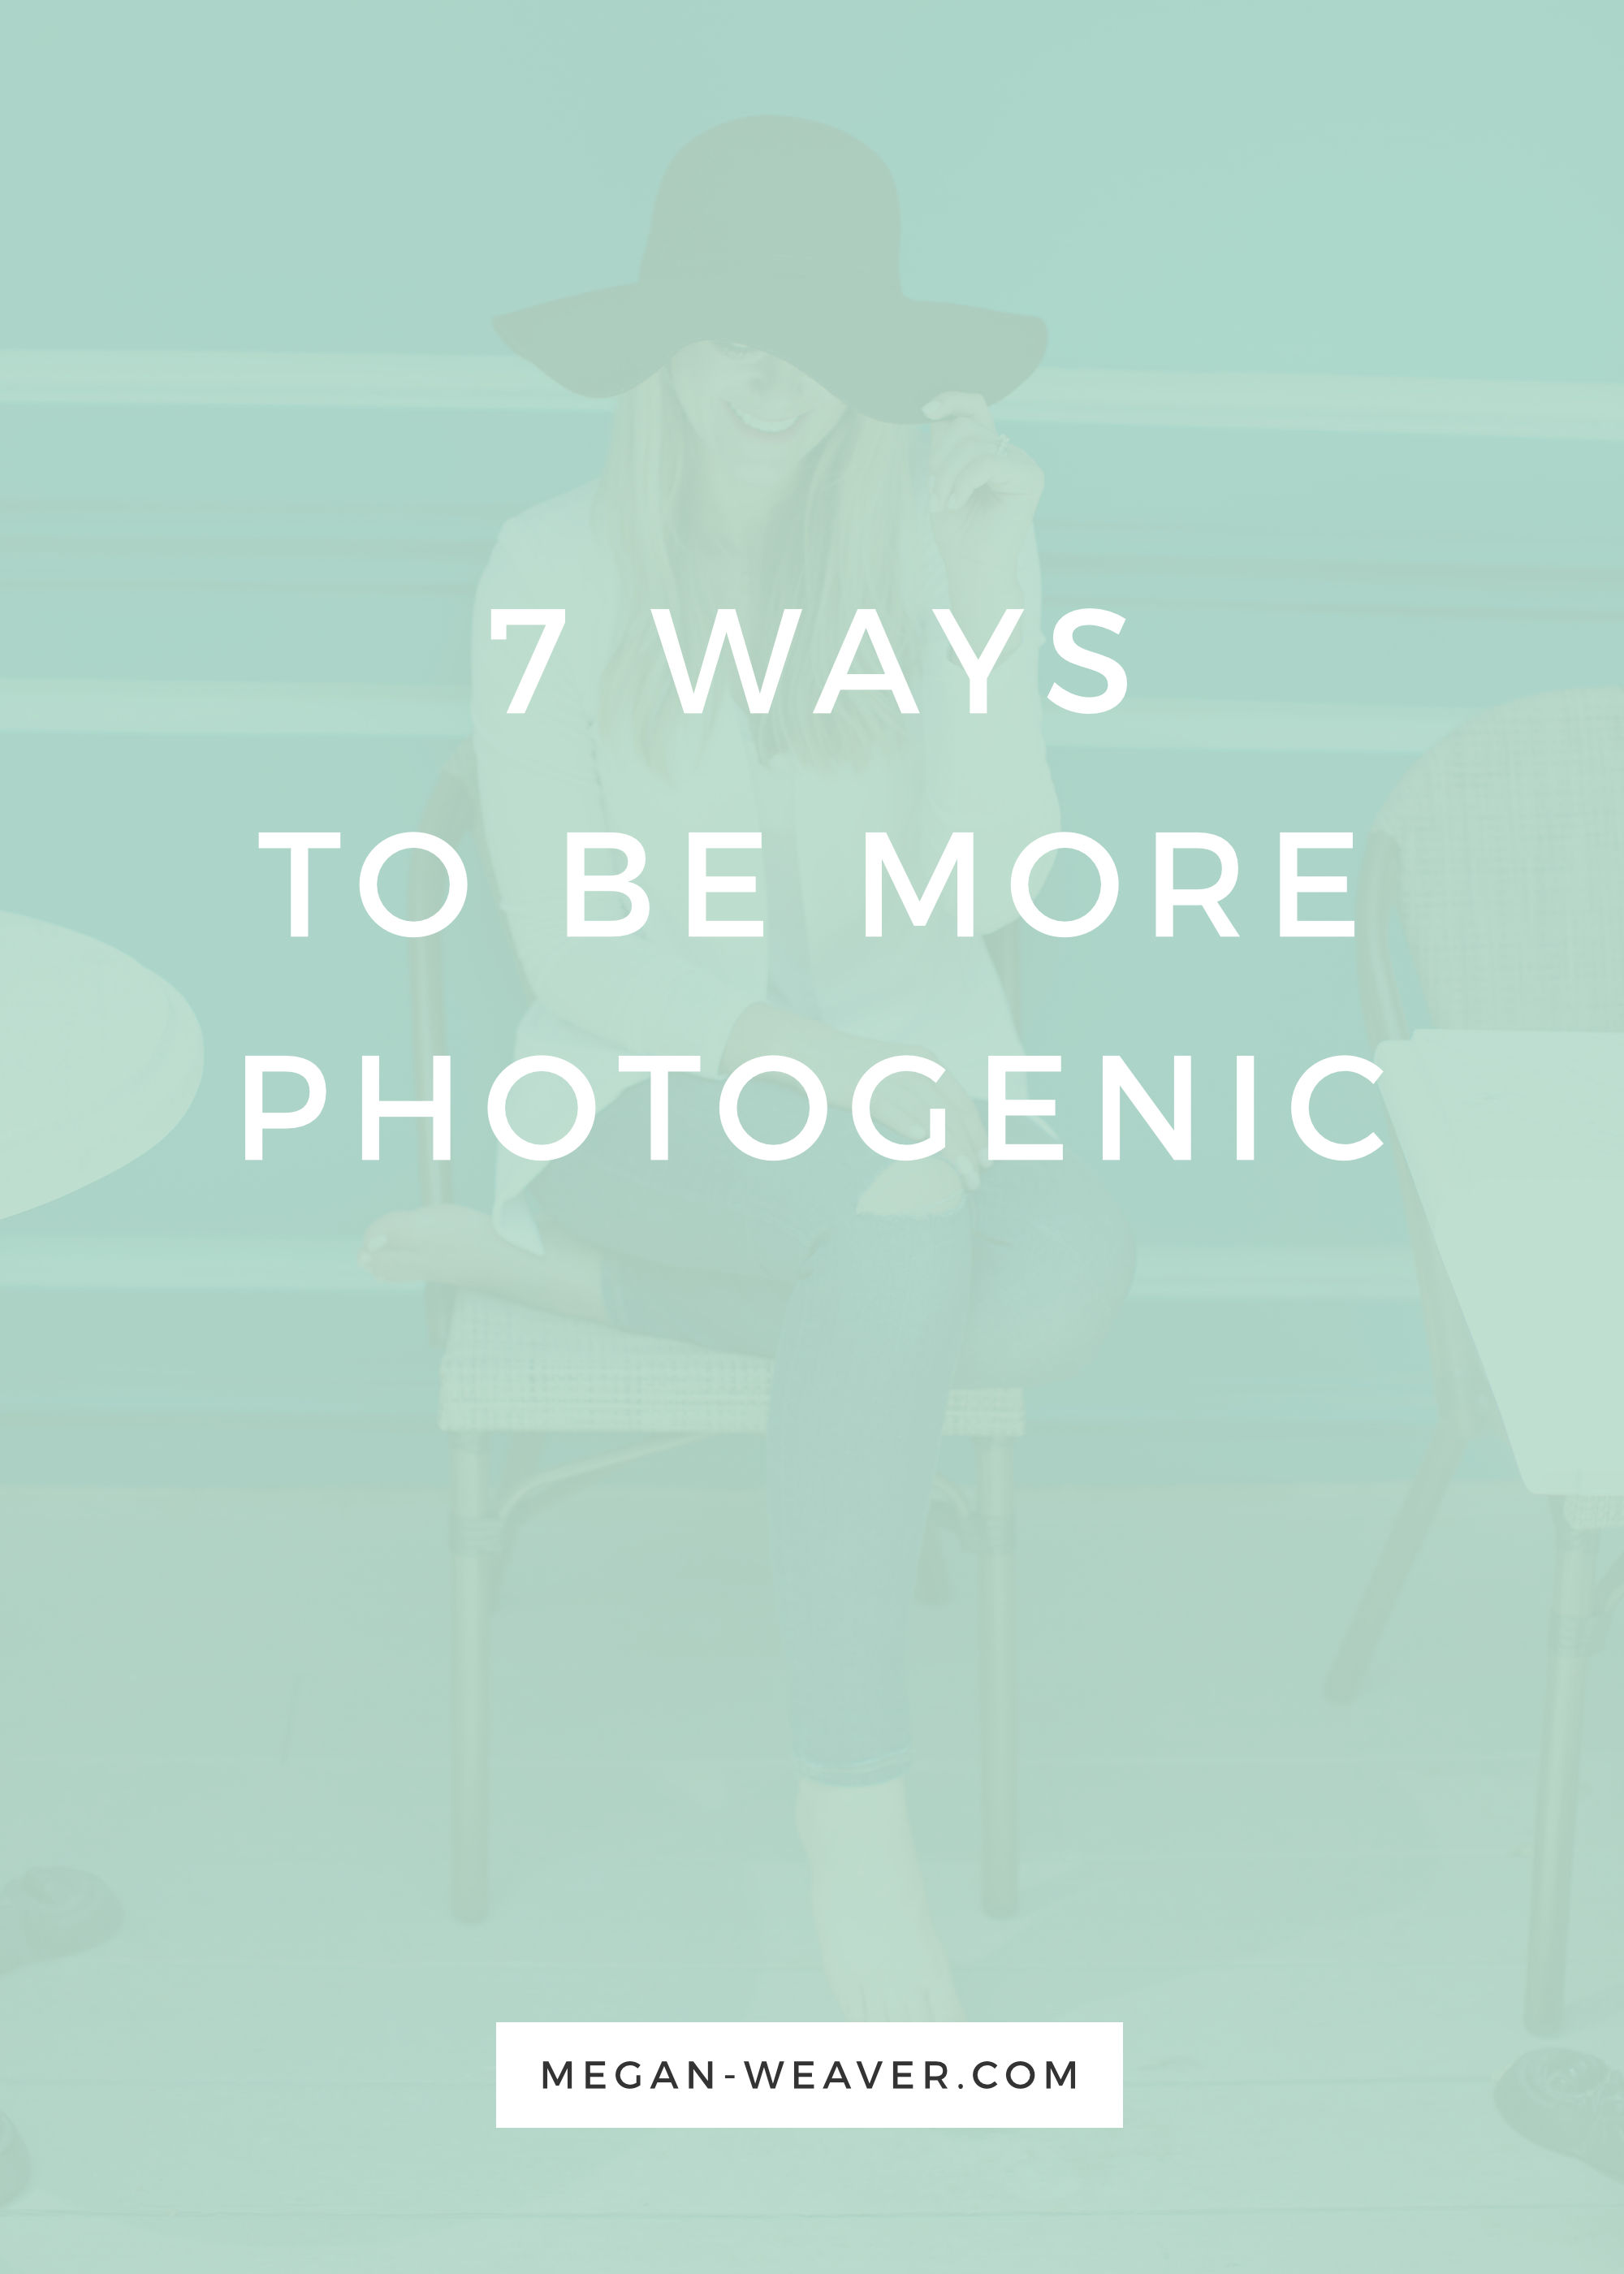 Being able to take a good photo has so much more to do with confidence than anything else. But in case you need a hand, click here for 7 ways to be more photogenic in your blog shoots!